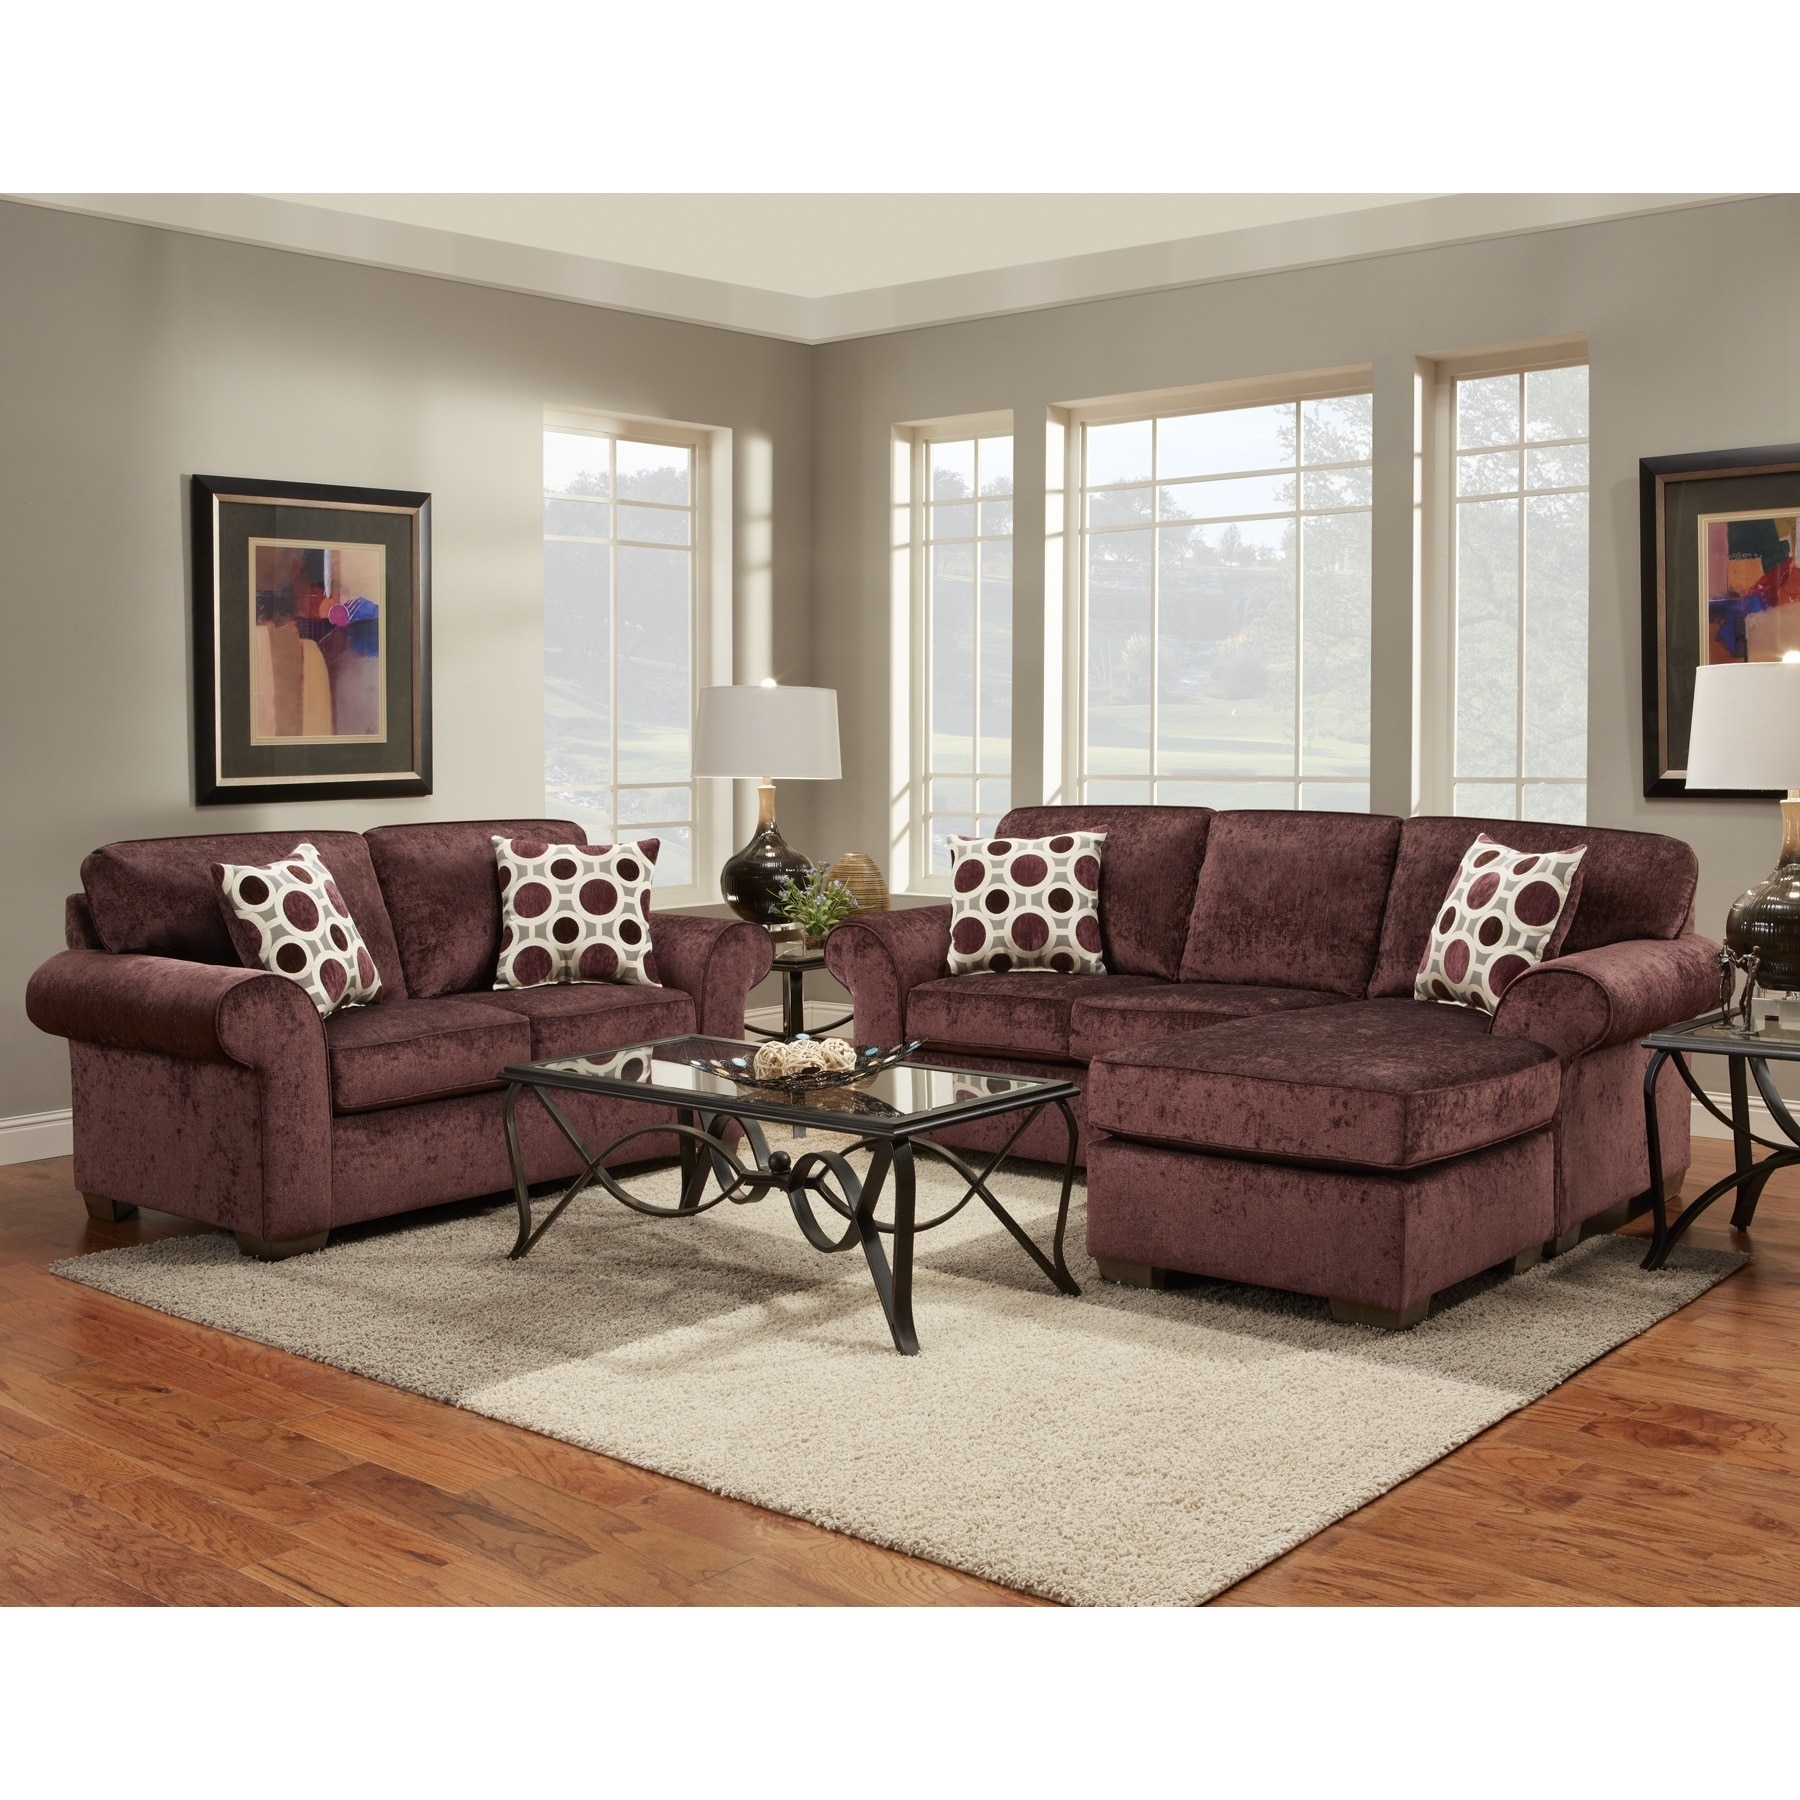 Fabric Sectional Sofa and Loveseat Set with Pillows, Pris...